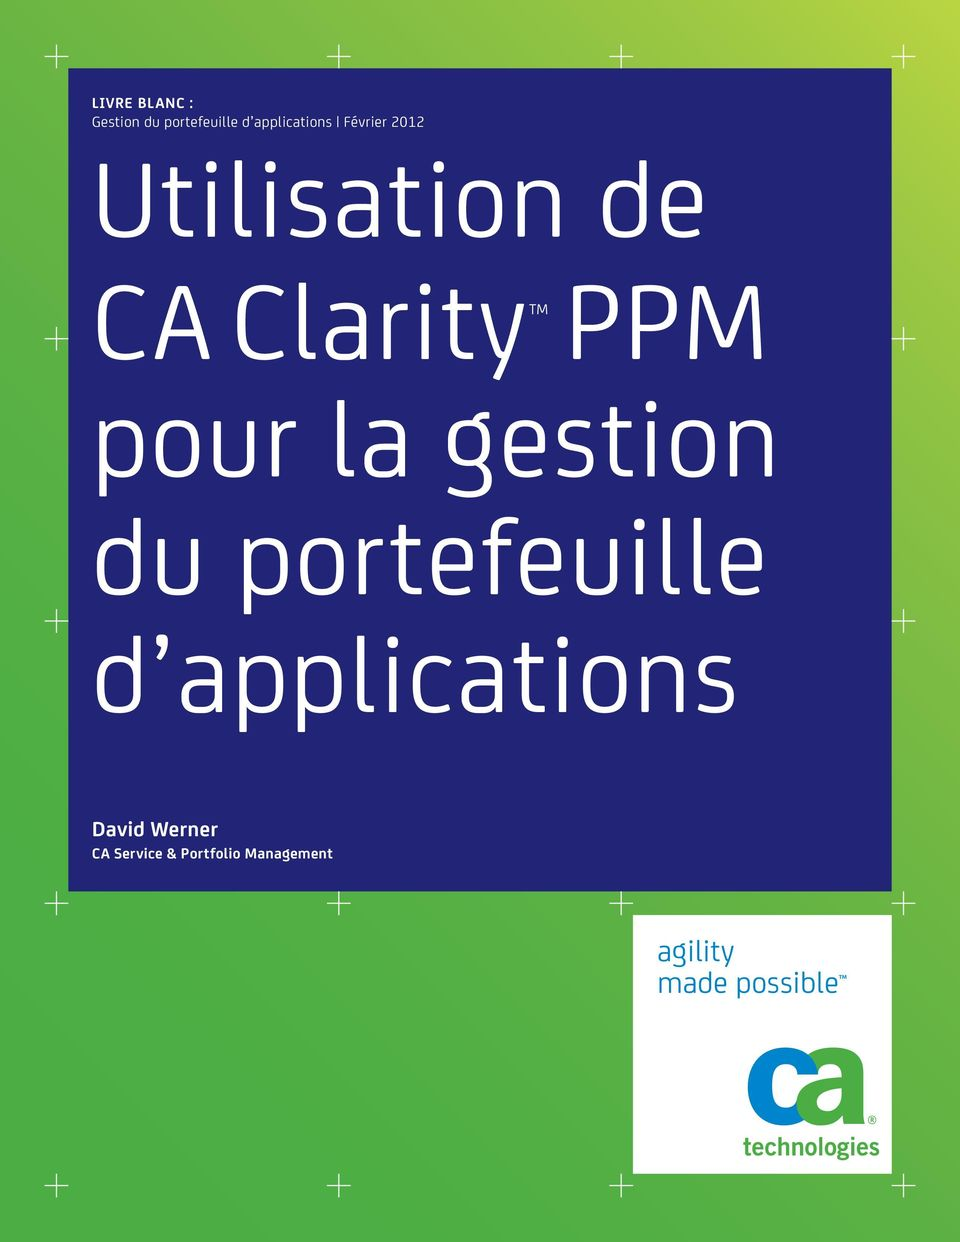 gestion du portefeuille d applications David Werner